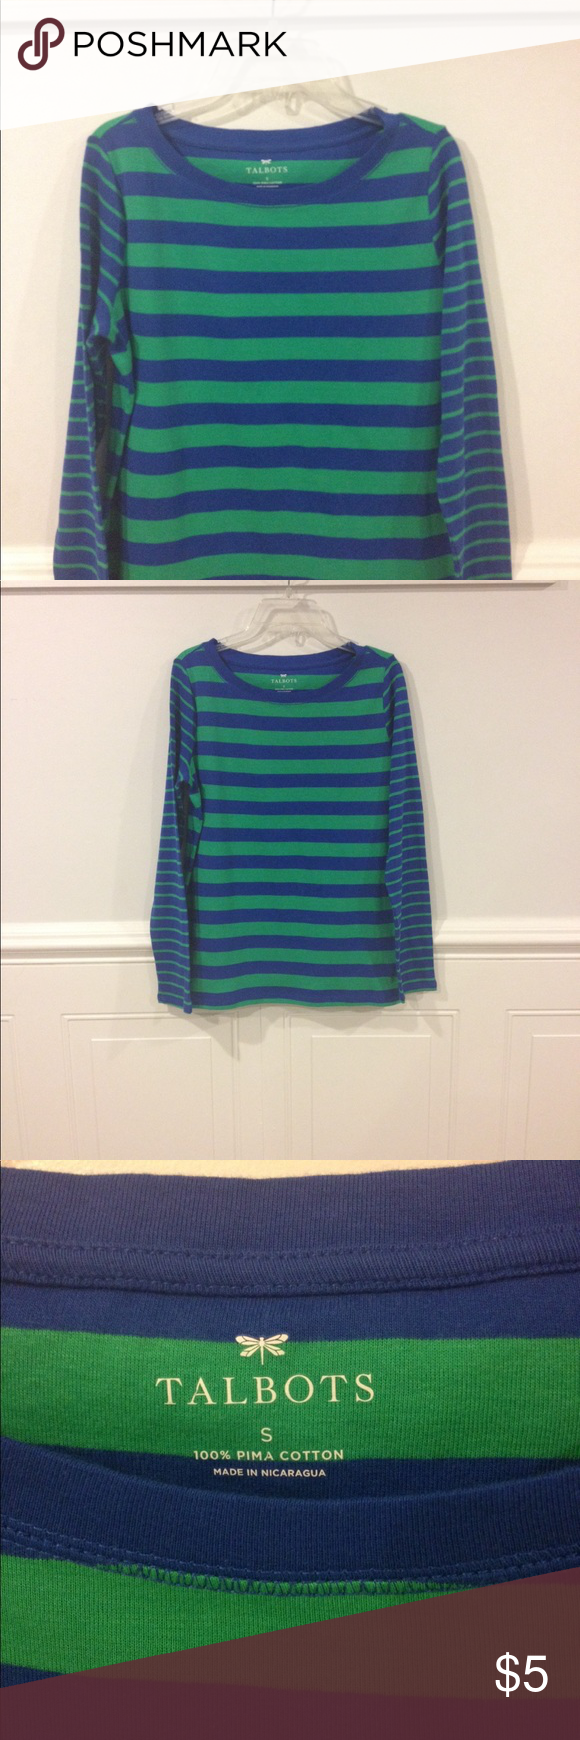 Talbots Small top good condition Size Small Talbots top good condition Talbots Tops